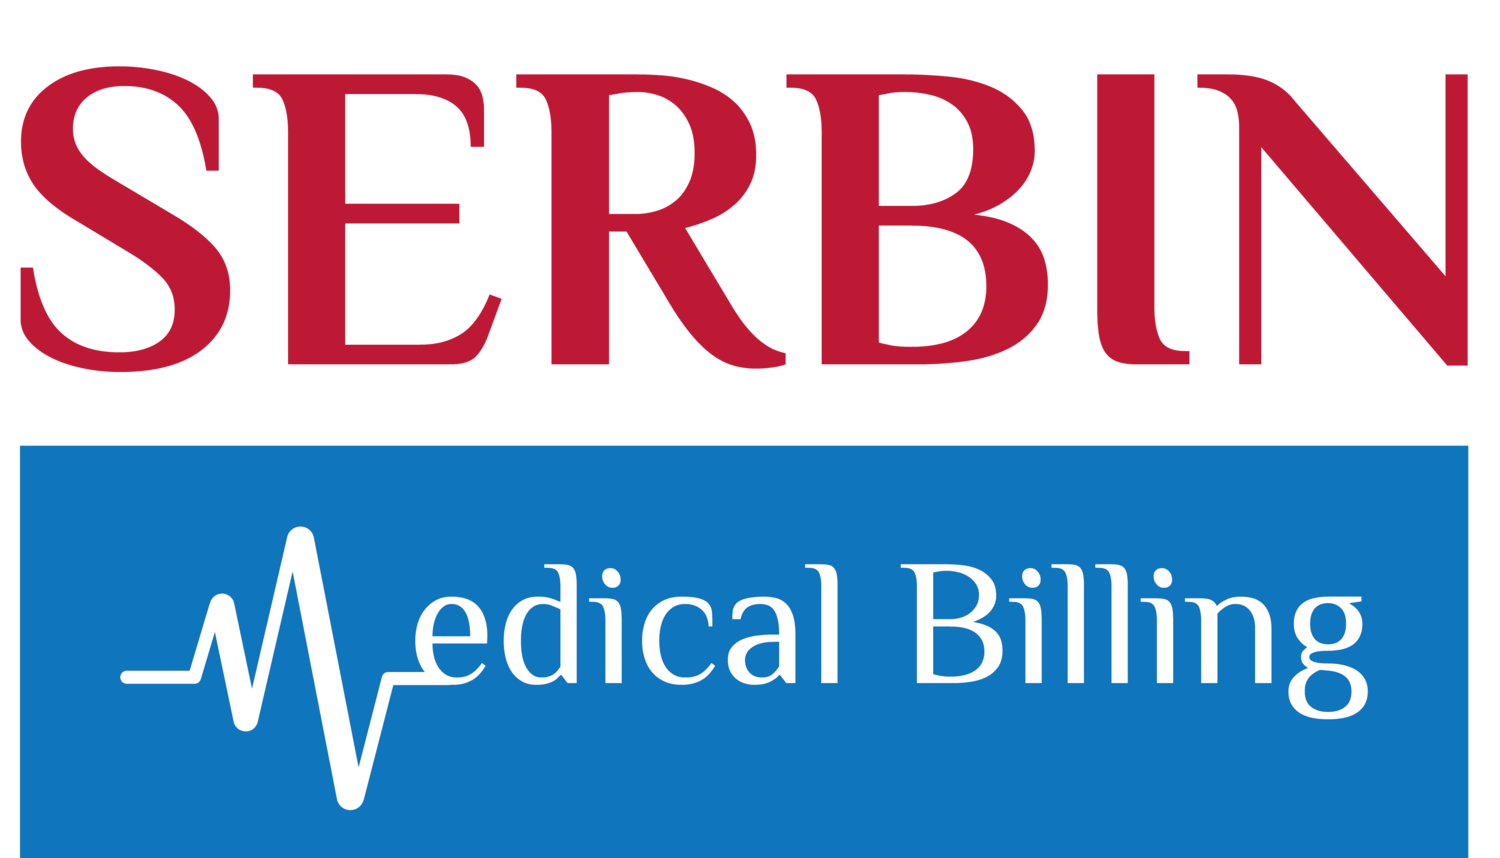 Serbin Medical Billing | ASC Billing Experts